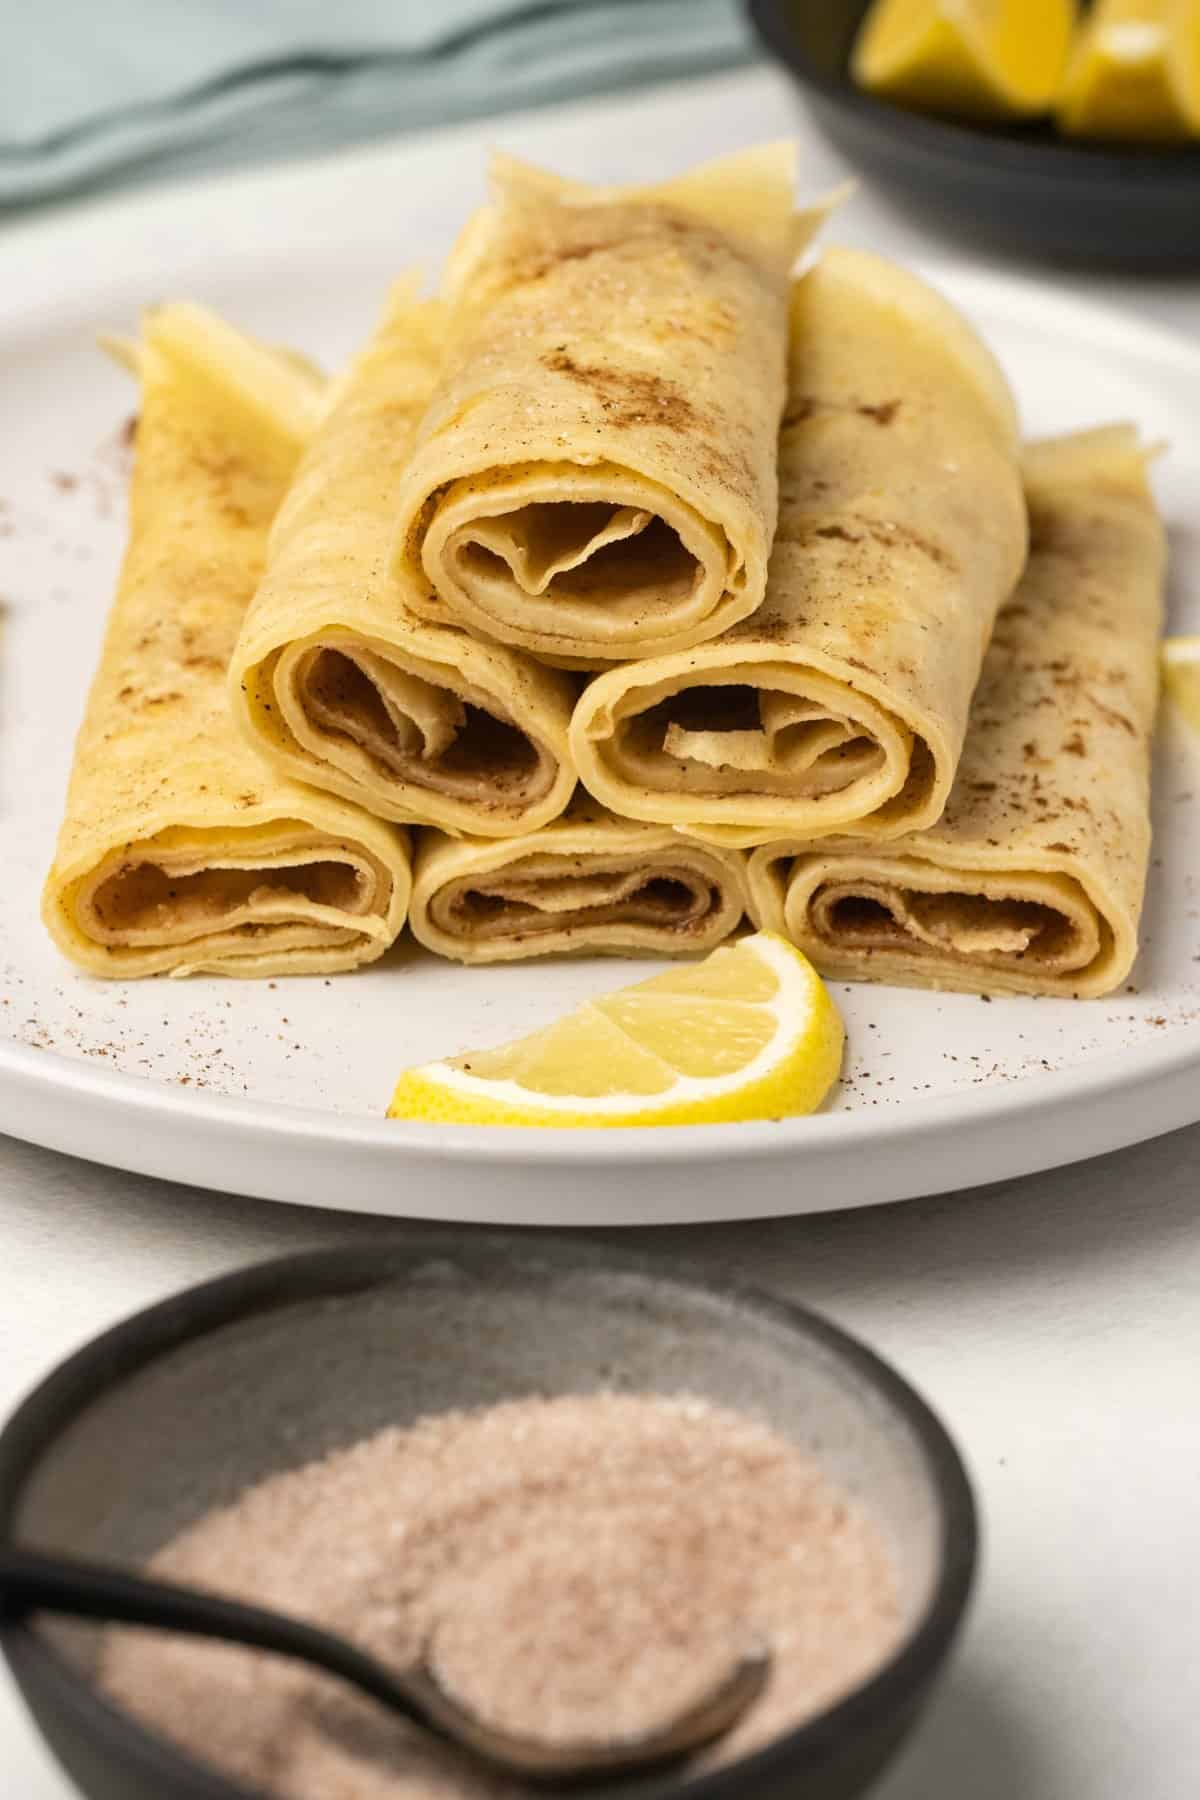 Crepes rolled up and cut in half on a white plate.